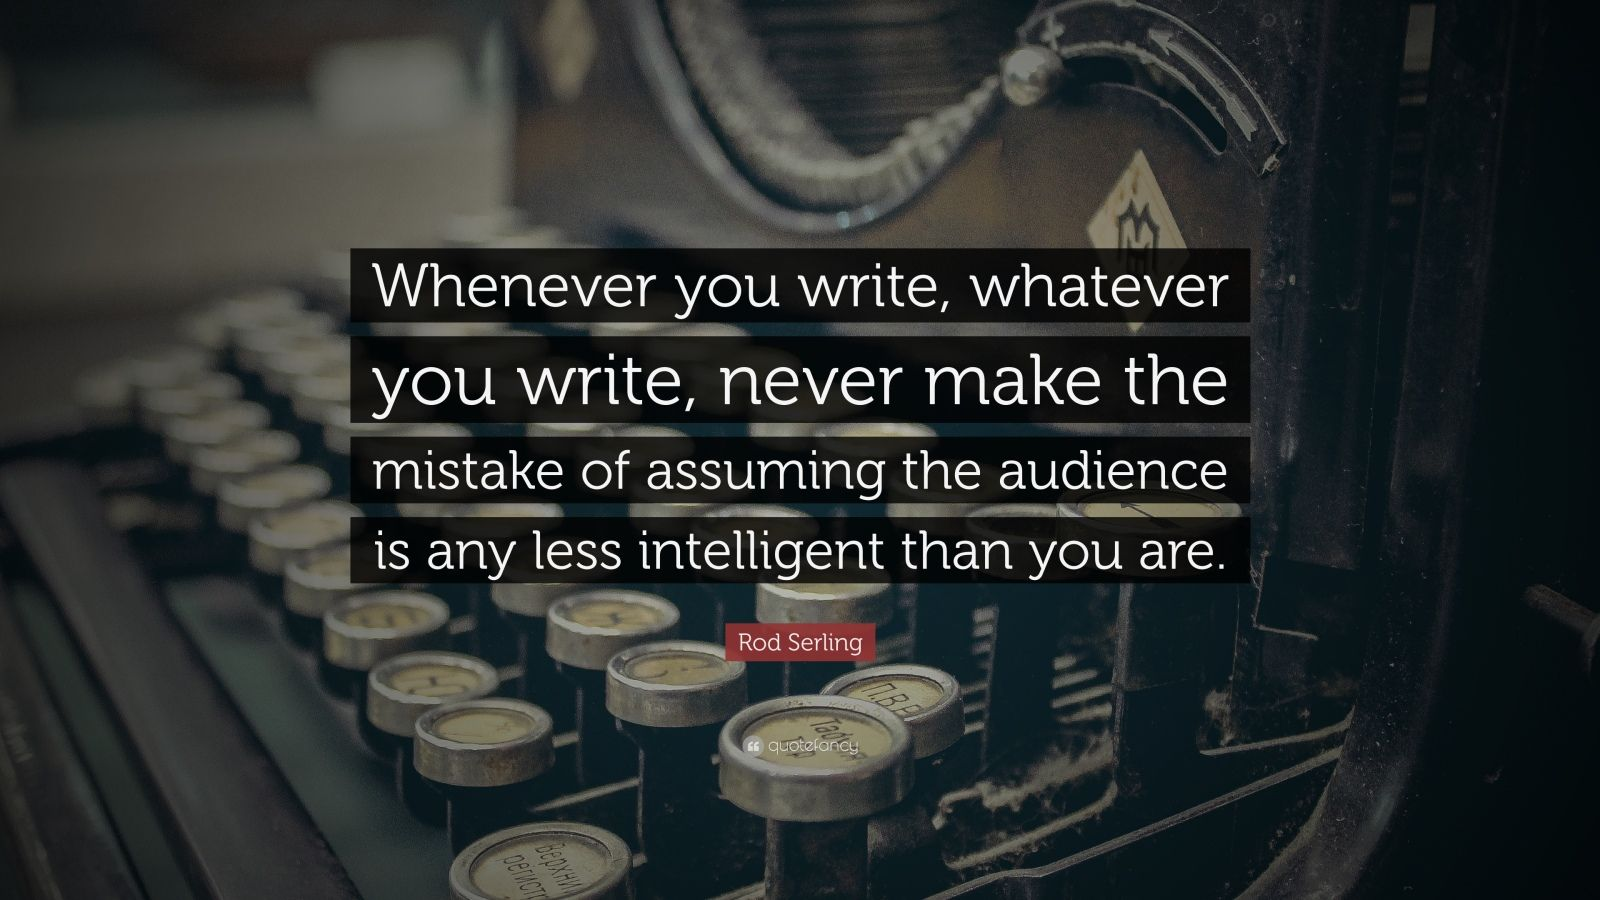 """Rod Serling Quote: """"Whenever you write, whatever you write, never make the mistake of assuming the audience is any less intelligent than you are."""""""